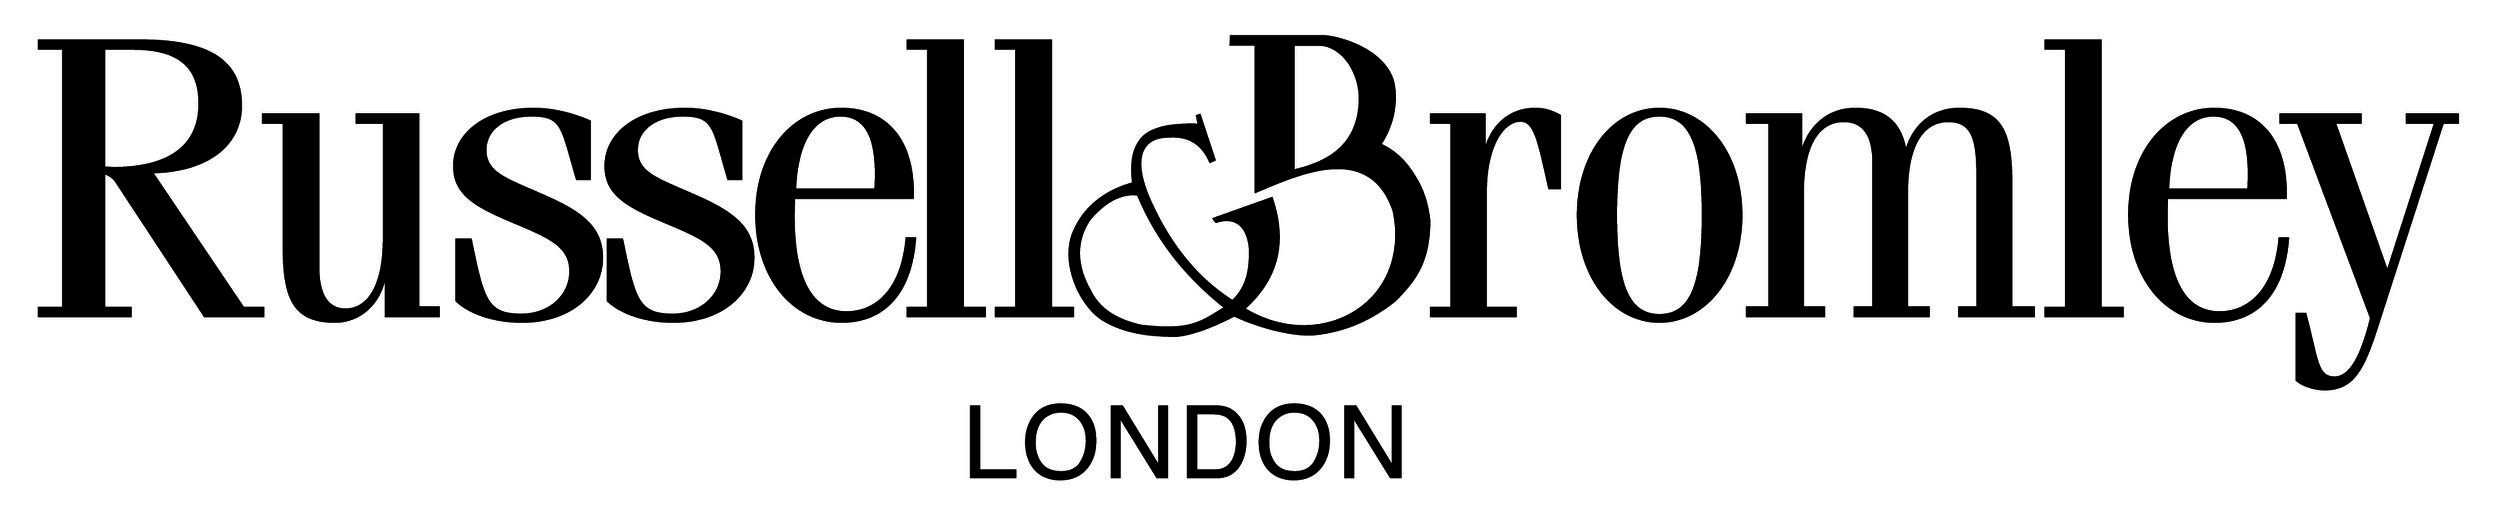 R&B_London_Logo.jpg